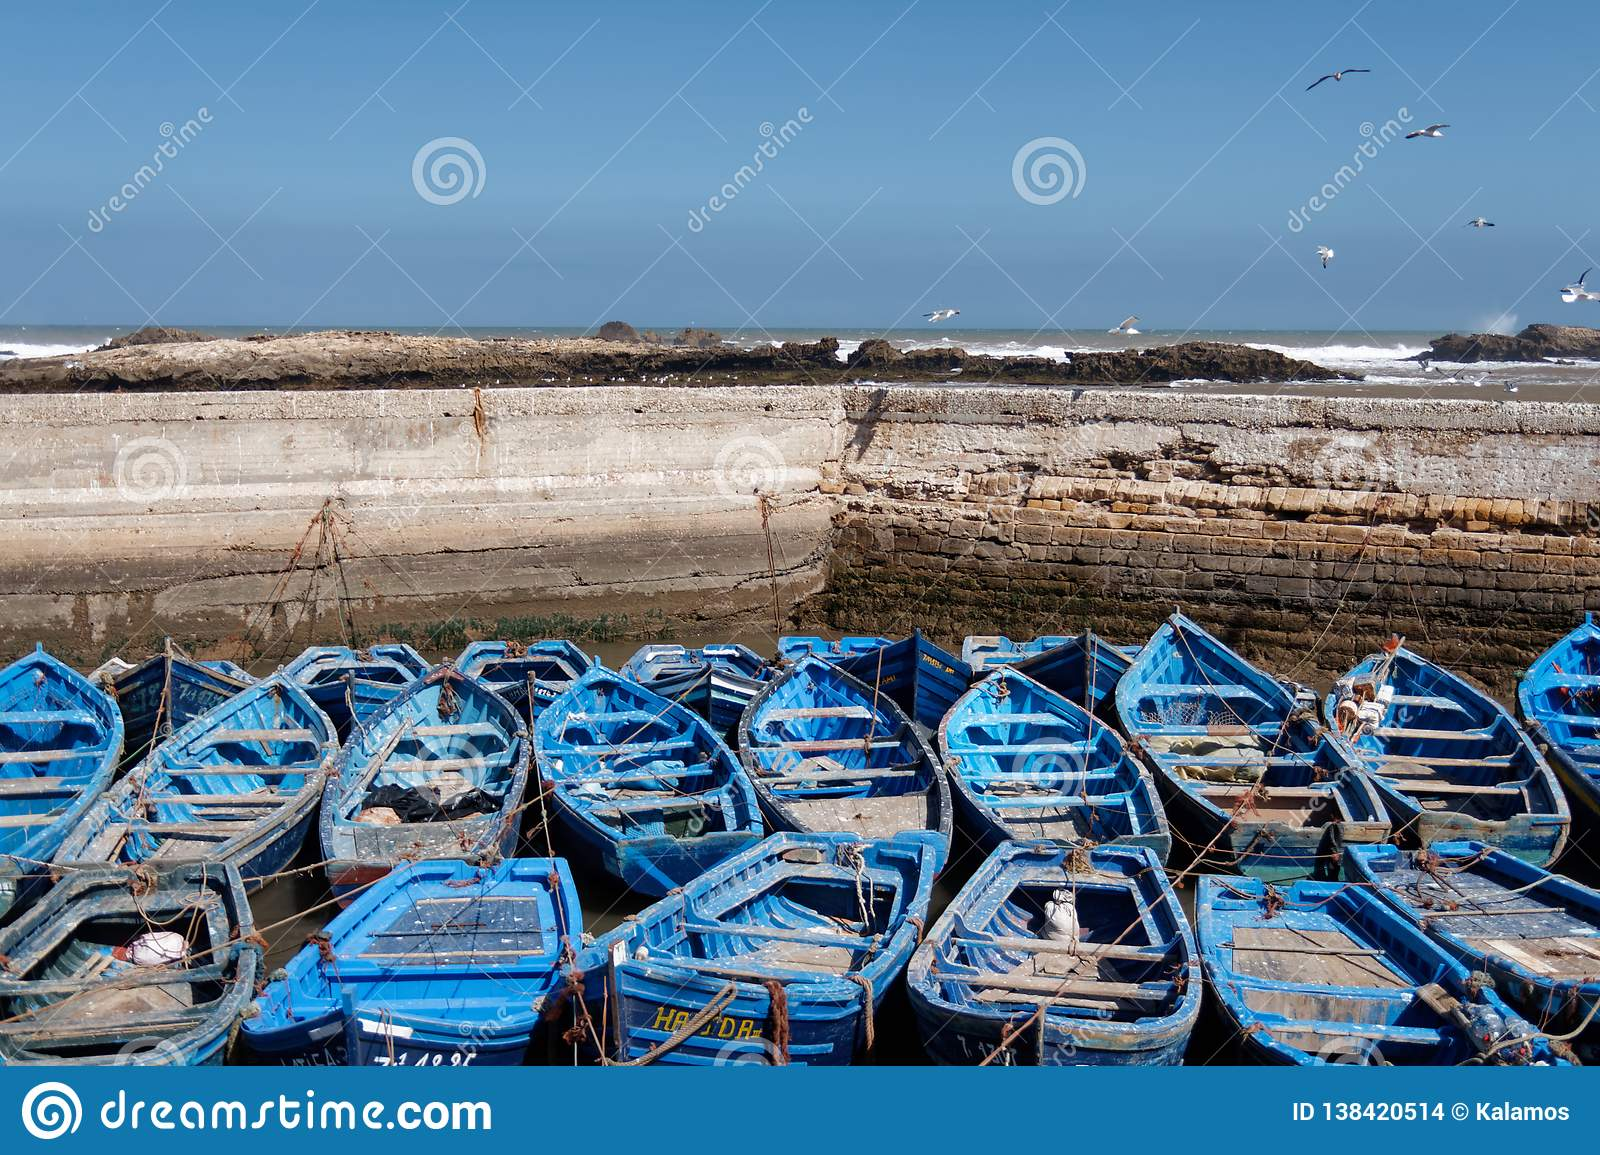 Fishing port in Essaouira, Morocco 2